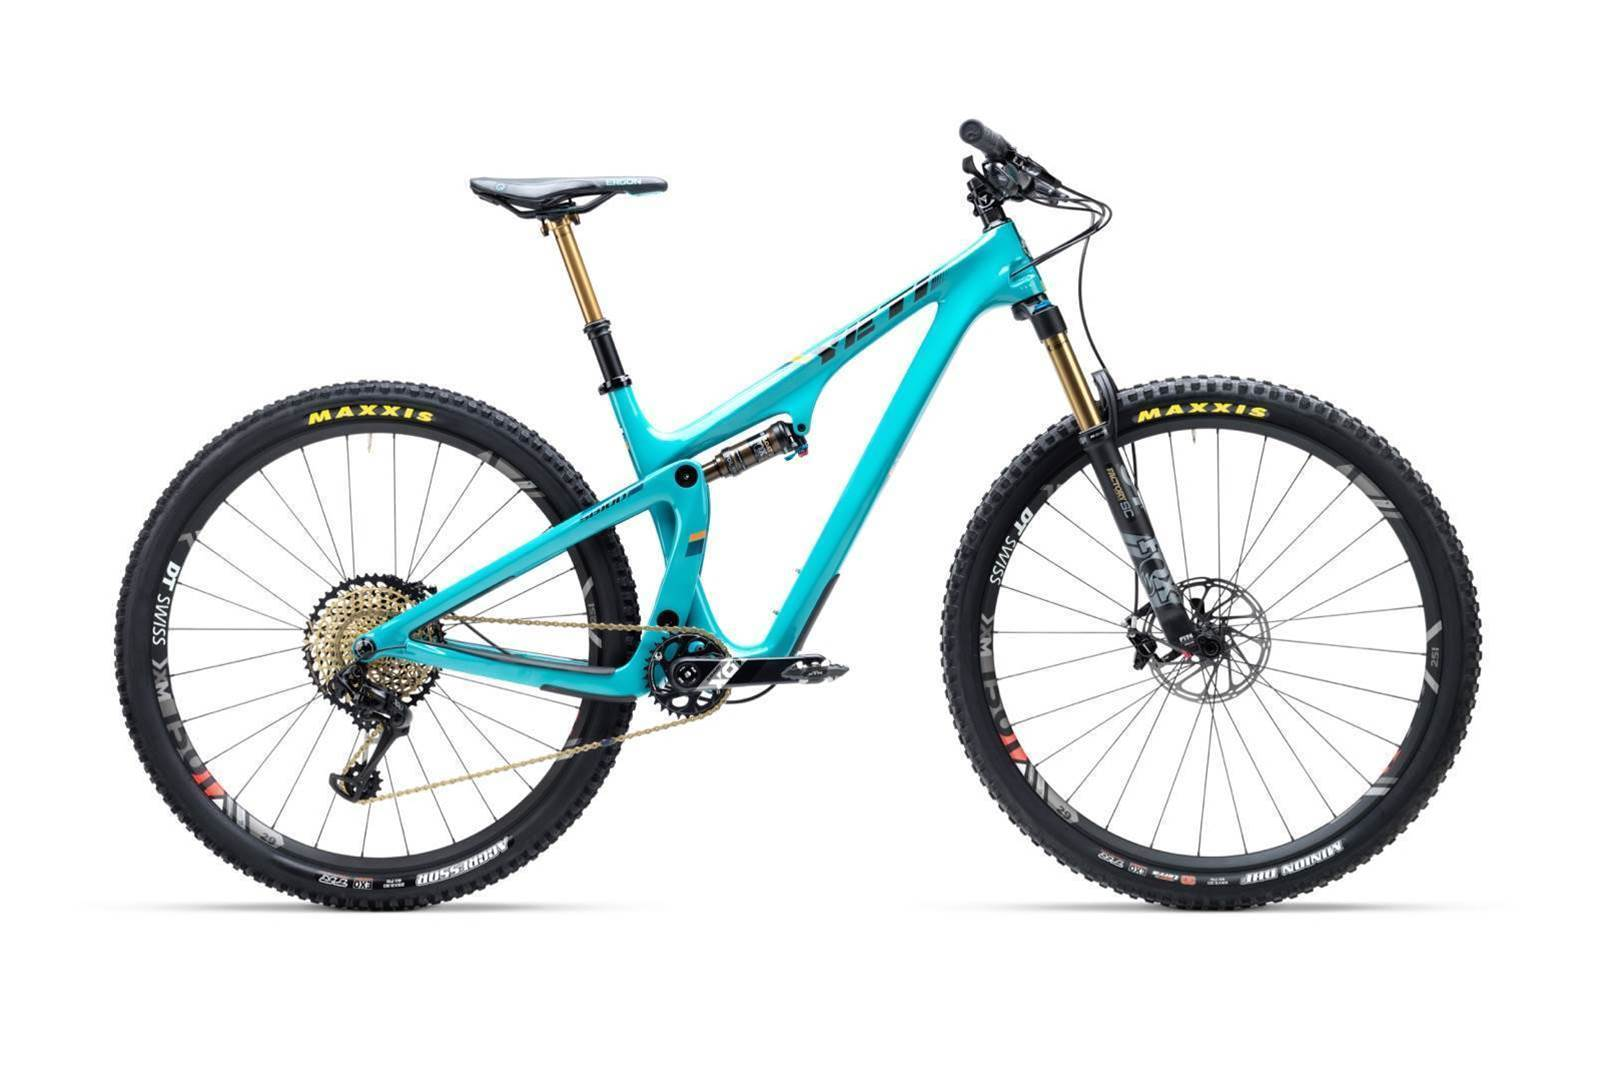 Yeti go new school XC with the SB100